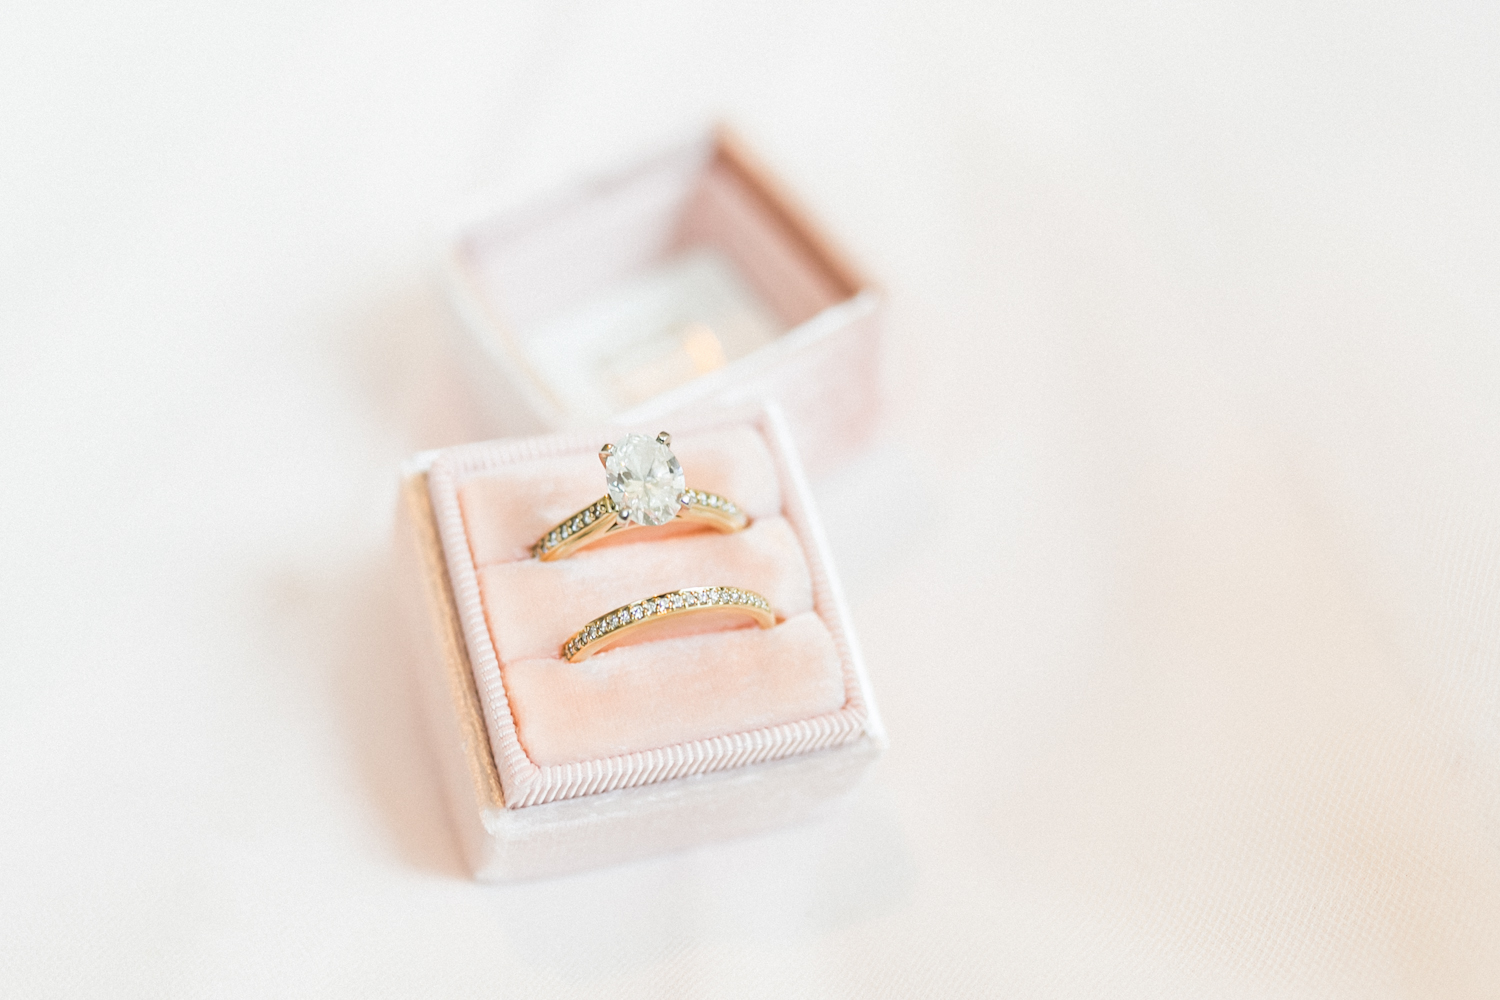 Diamond ring with gold band in a Mrs. Box by photographer Cassie Howard